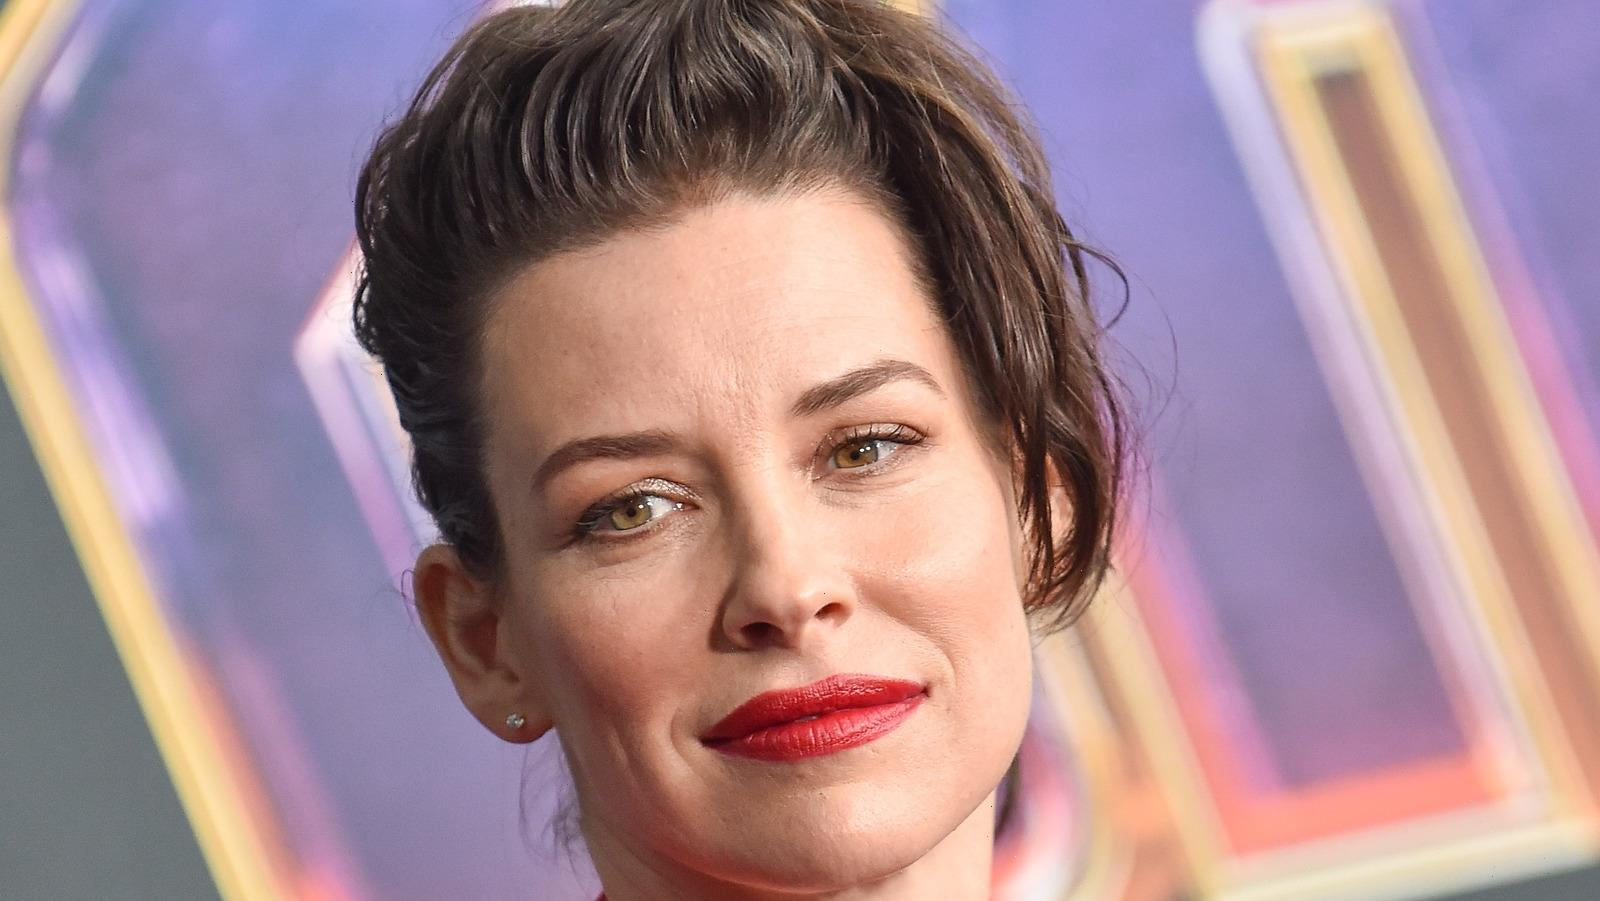 The Surprising Job Evangeline Lilly Had Before She Was Famous